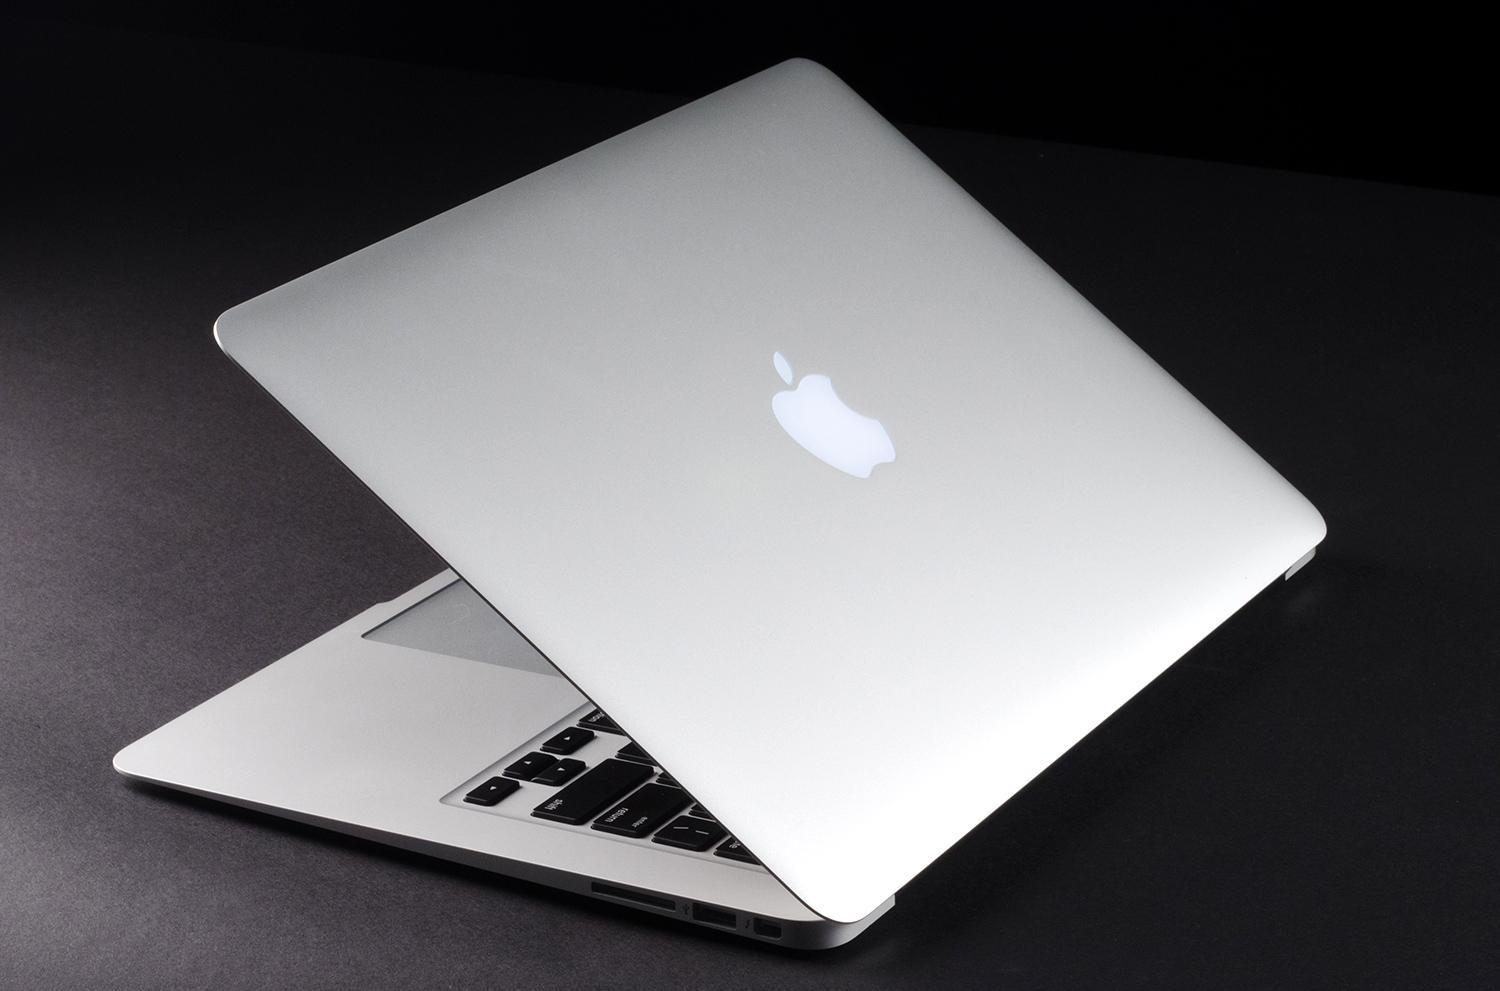 Find great deals on eBay for Used Laptops in PC Laptops and Netbooks. Shop with confidence.